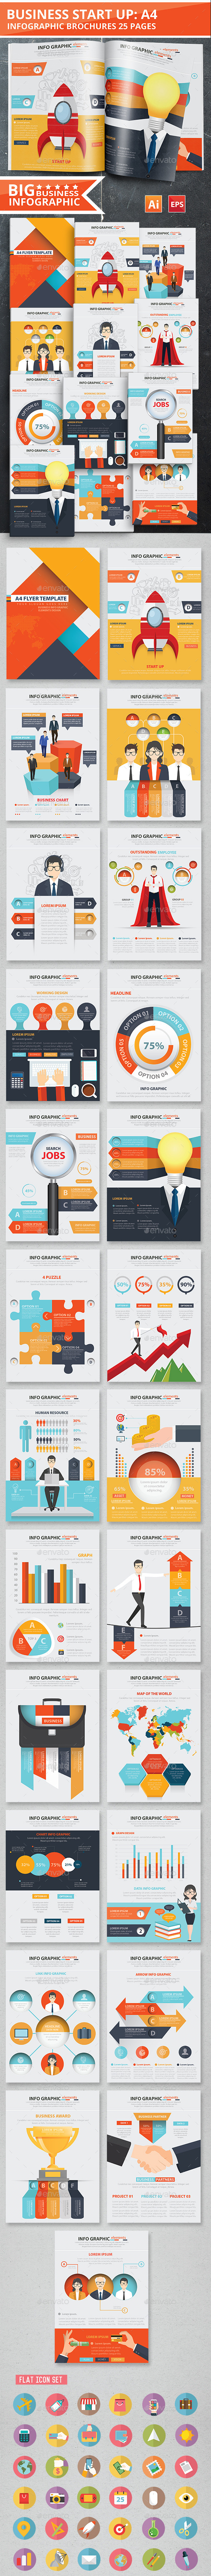 Business Start Up Infographic Design 25 Pages - Infographics